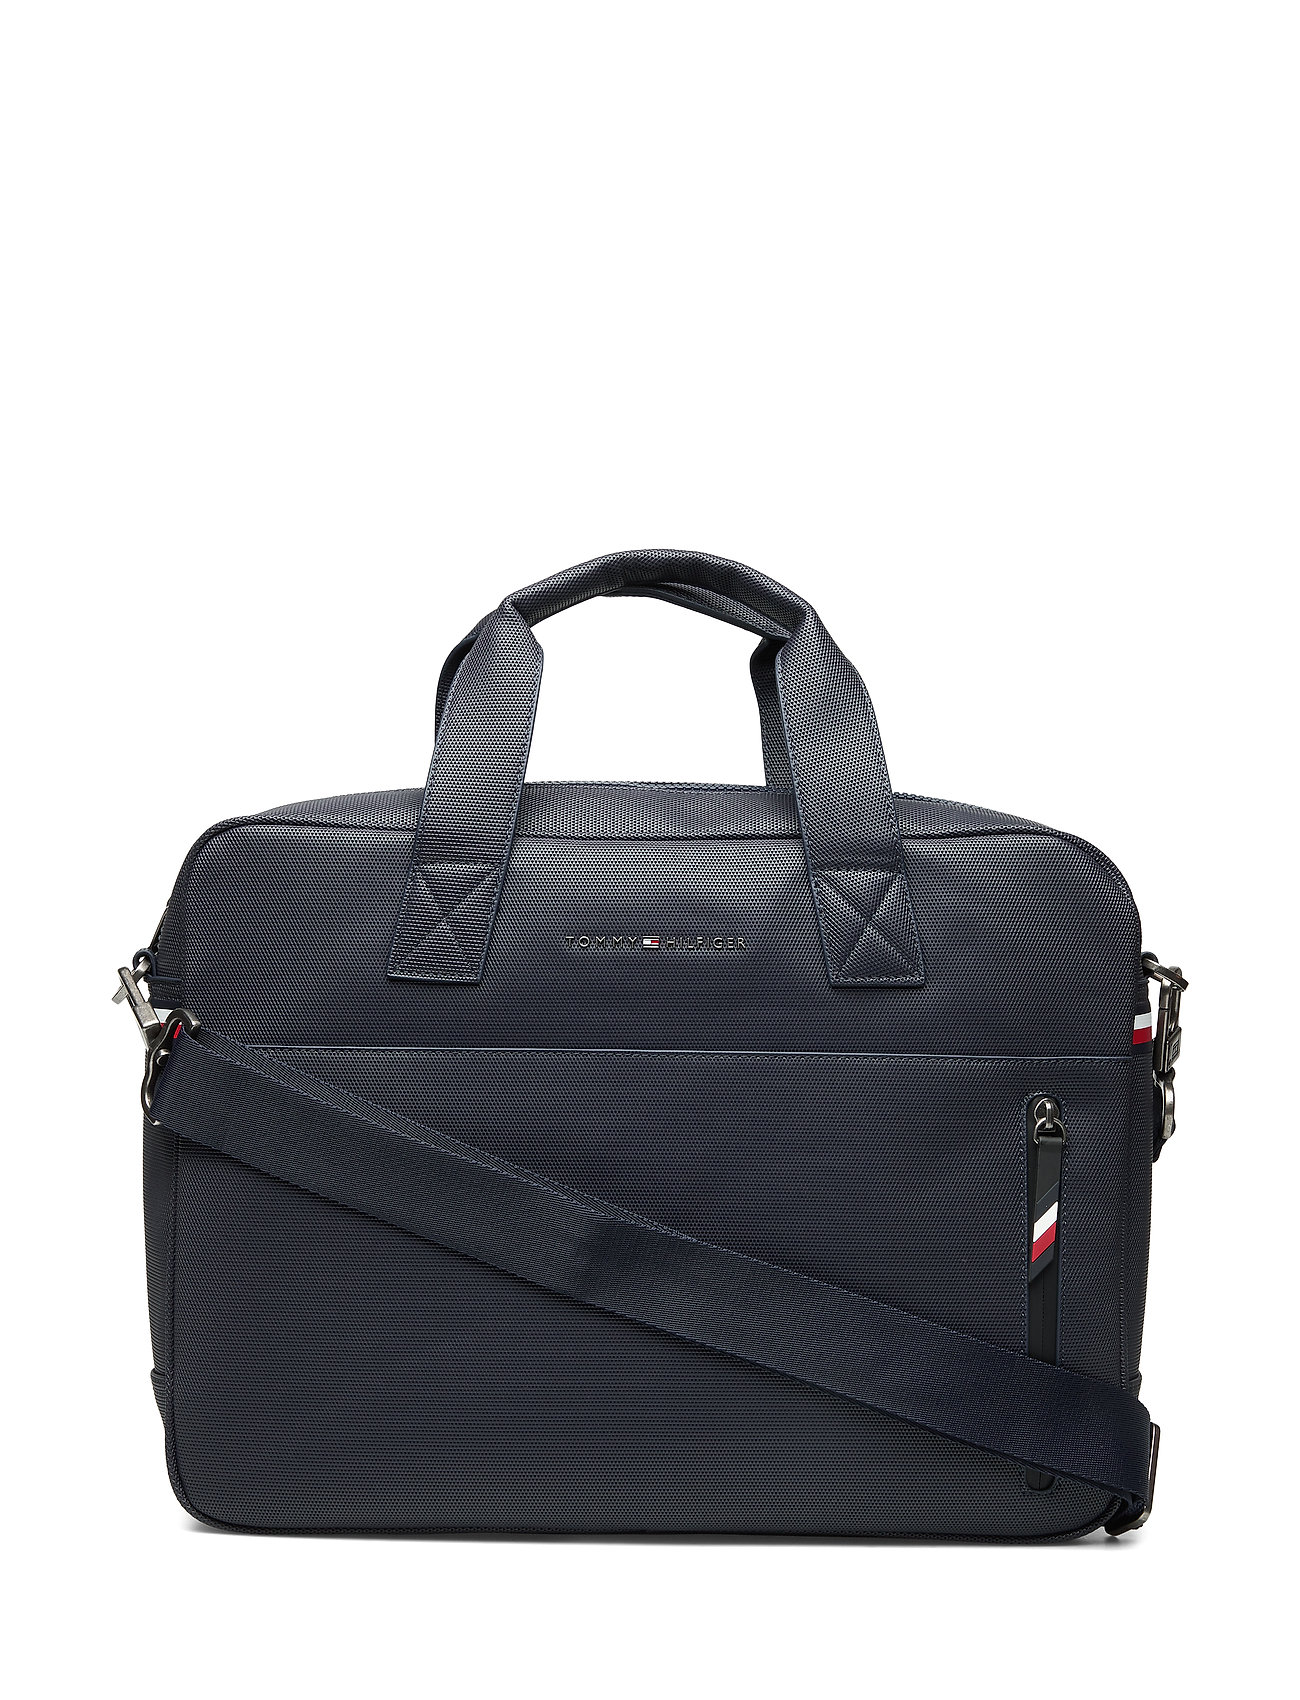 Essential Pique Computer Bag by Tommy Hilfiger